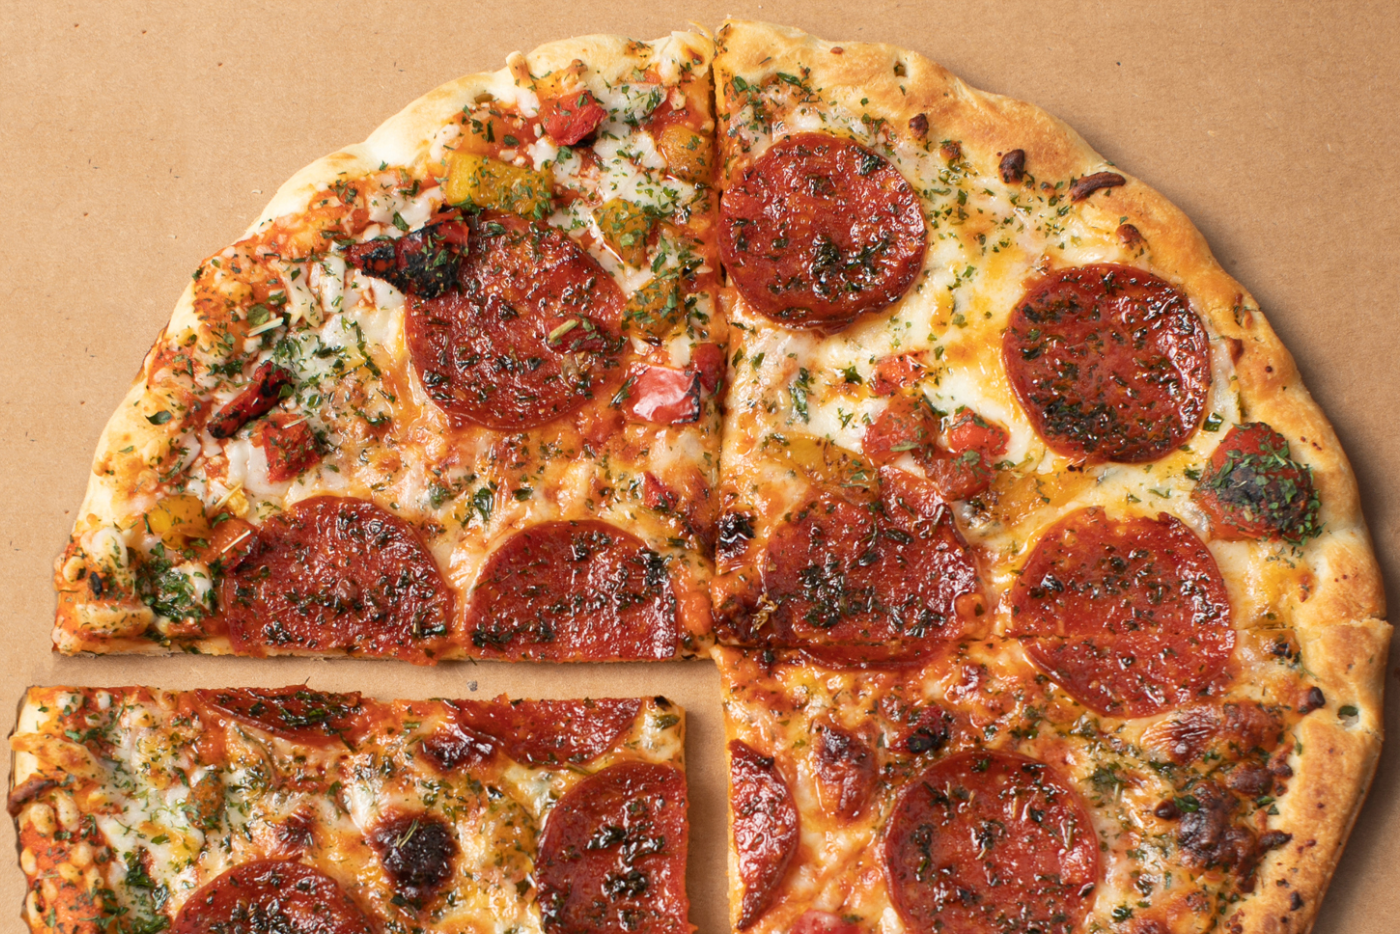 Pizza vending machines are coming, and they're perfect for the